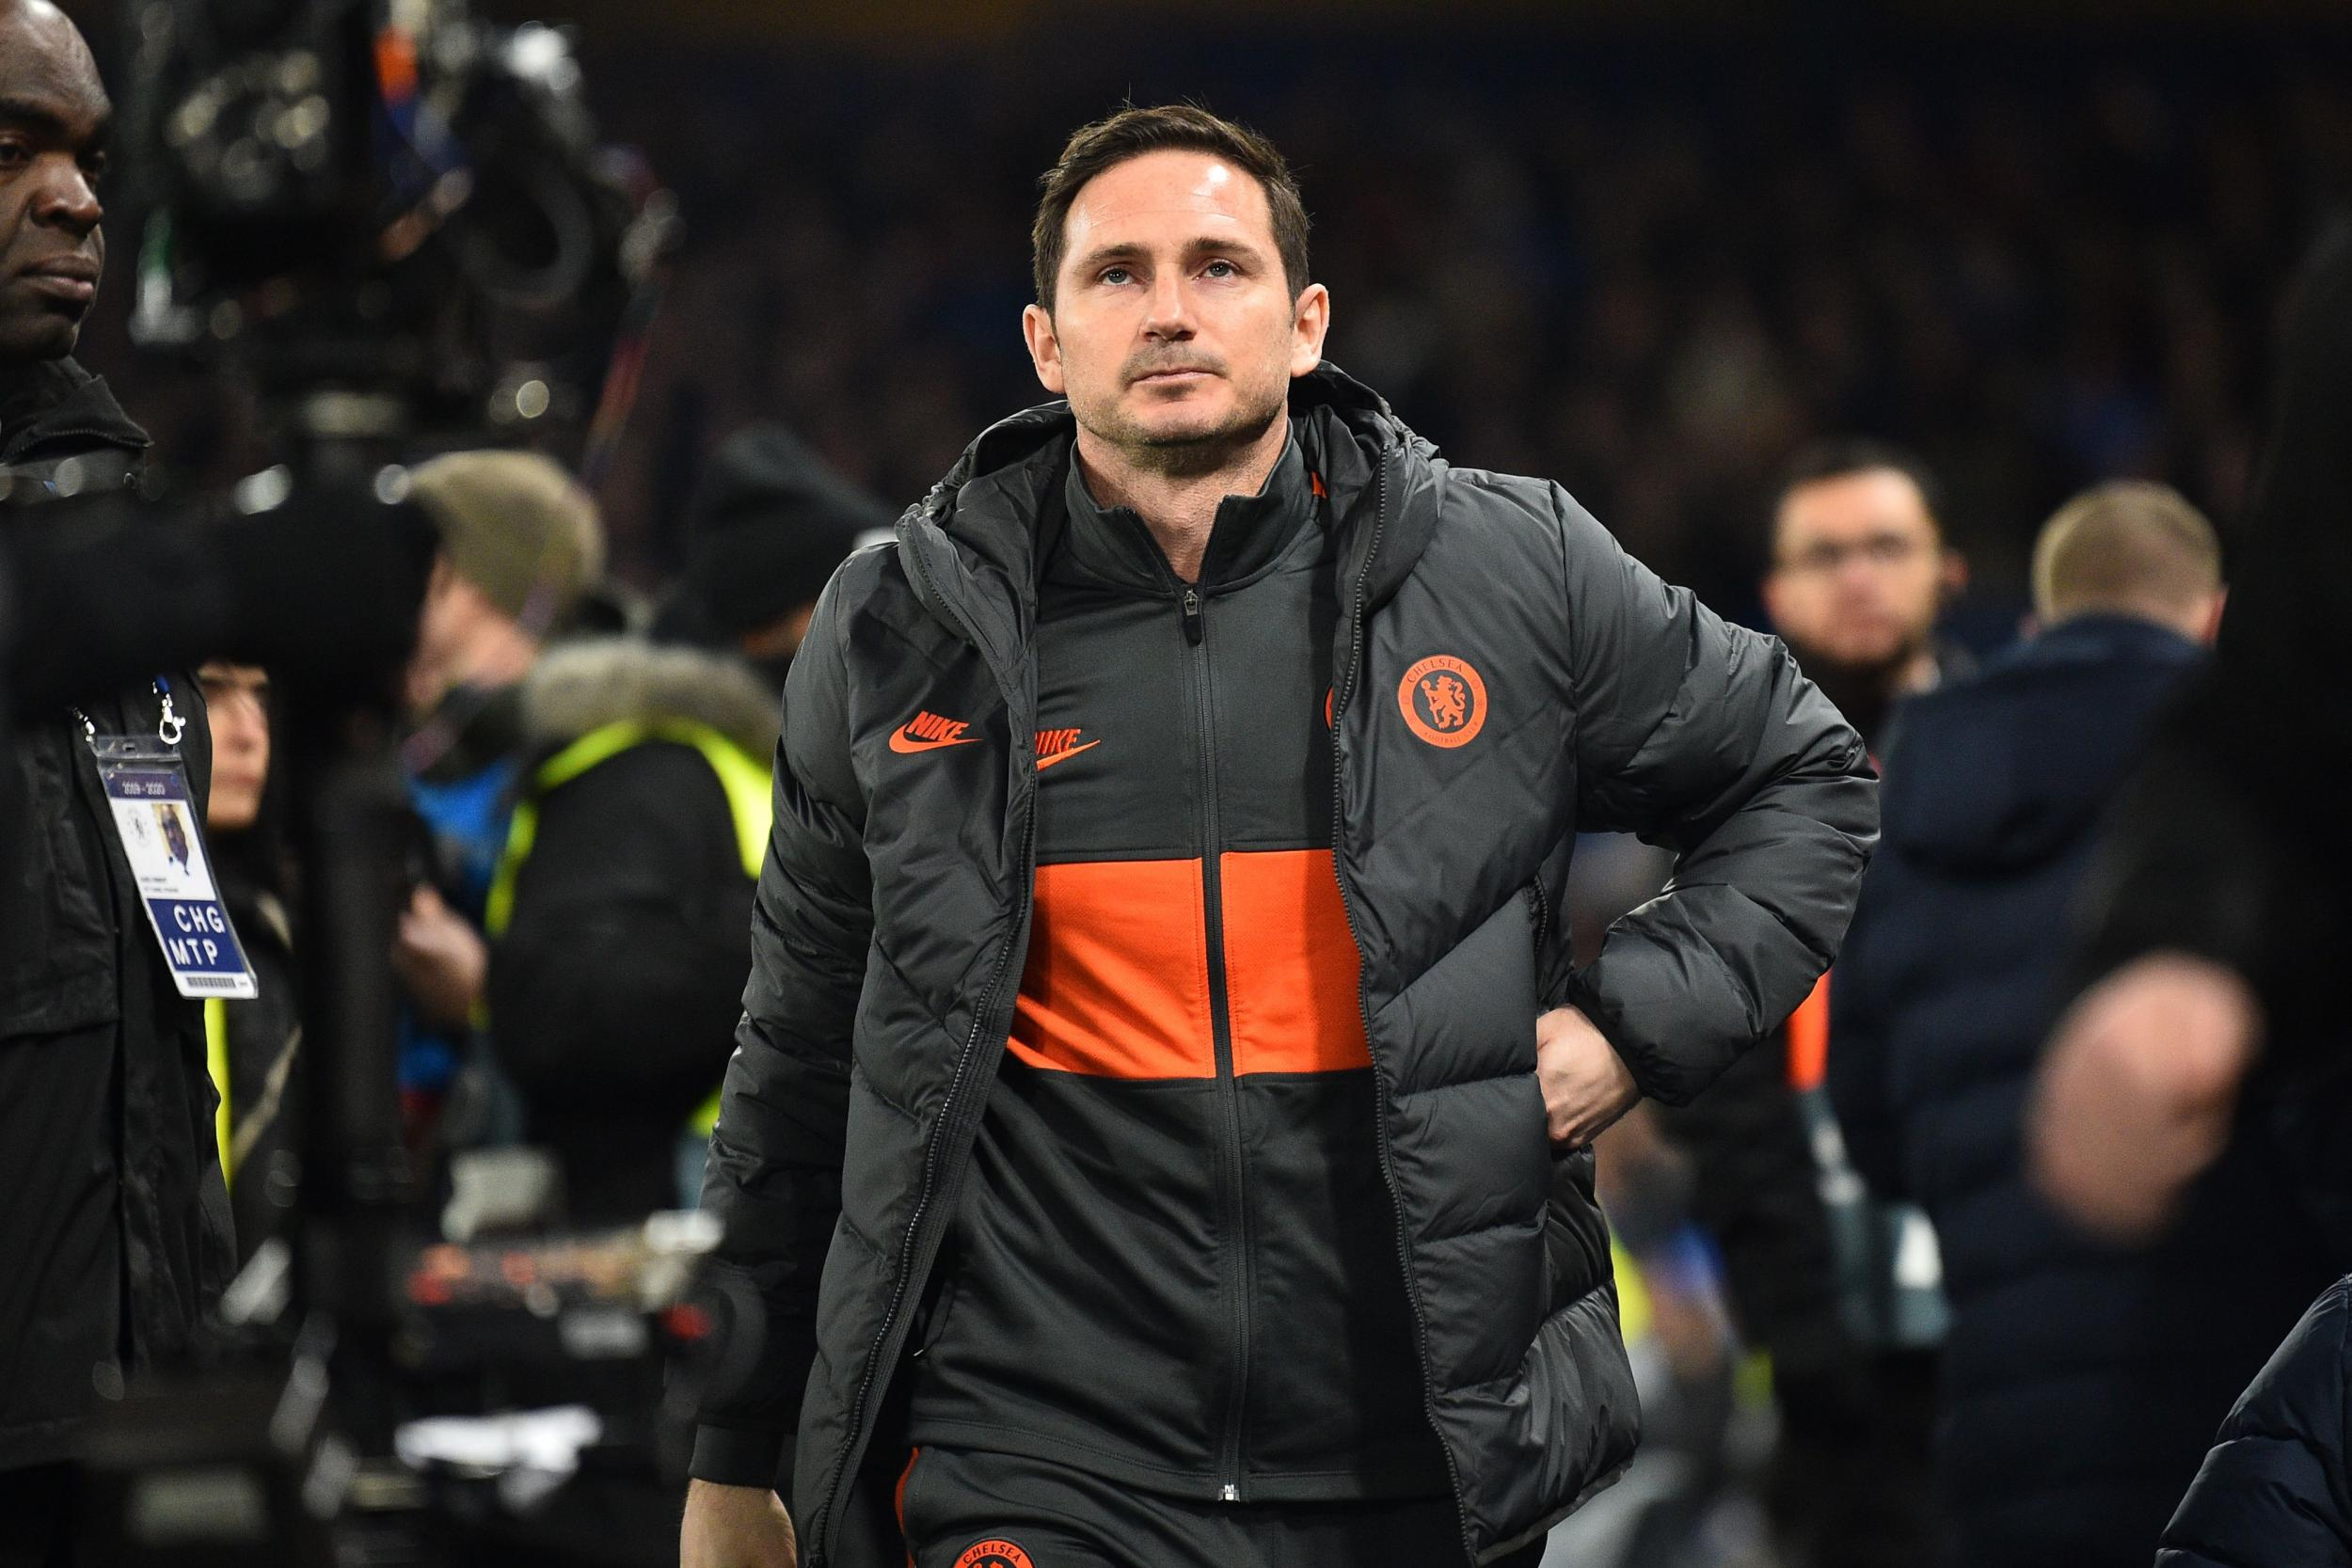 Lampard urges Chelsea to aim for Bayern levels after 'reality check'